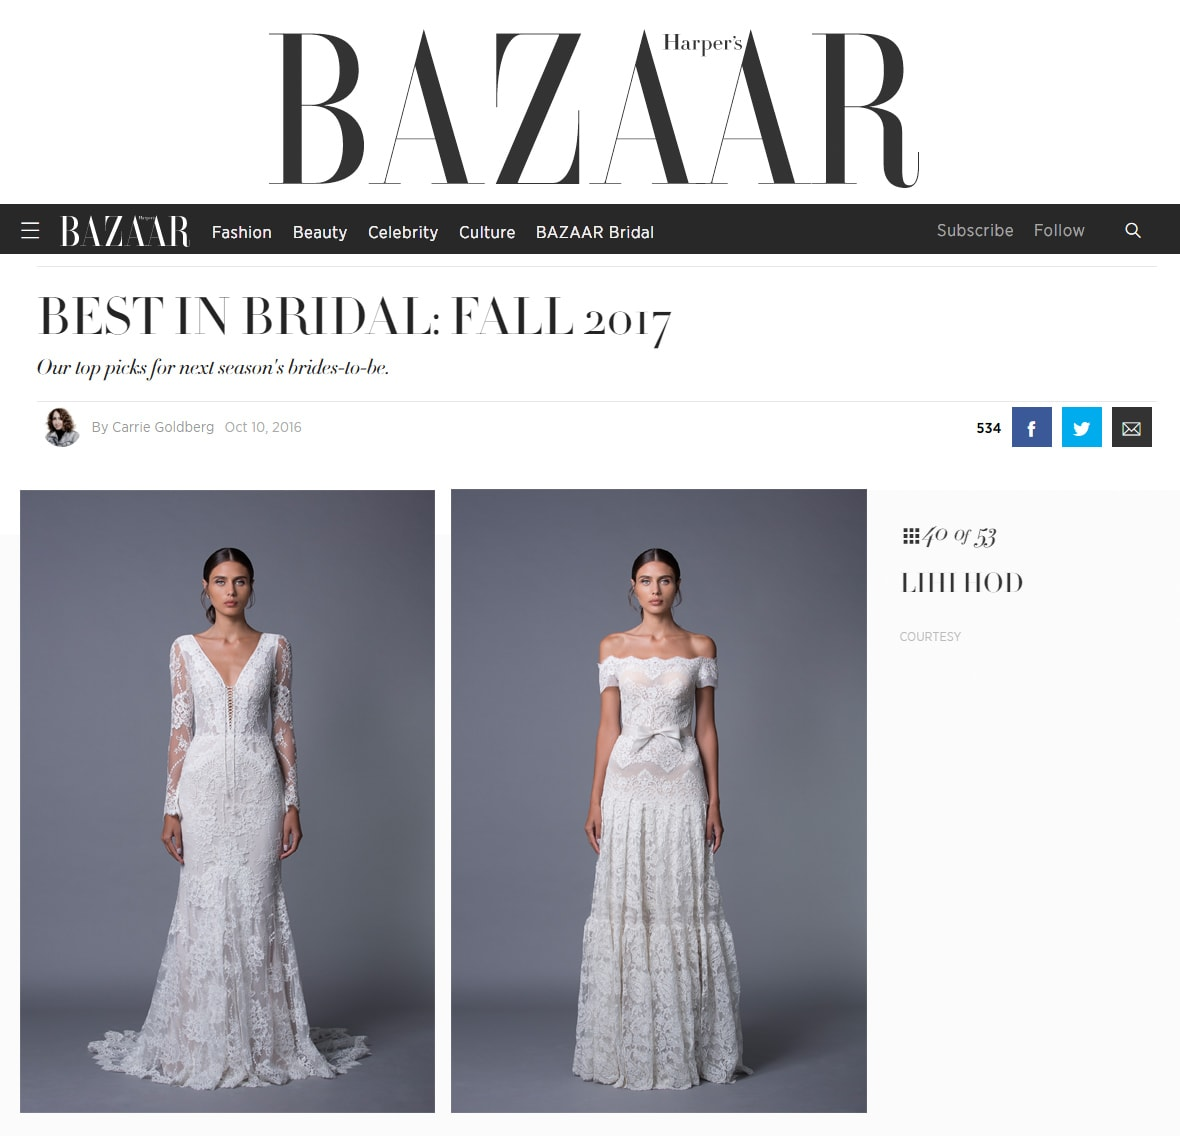 Best in Bridal: Fall 2017